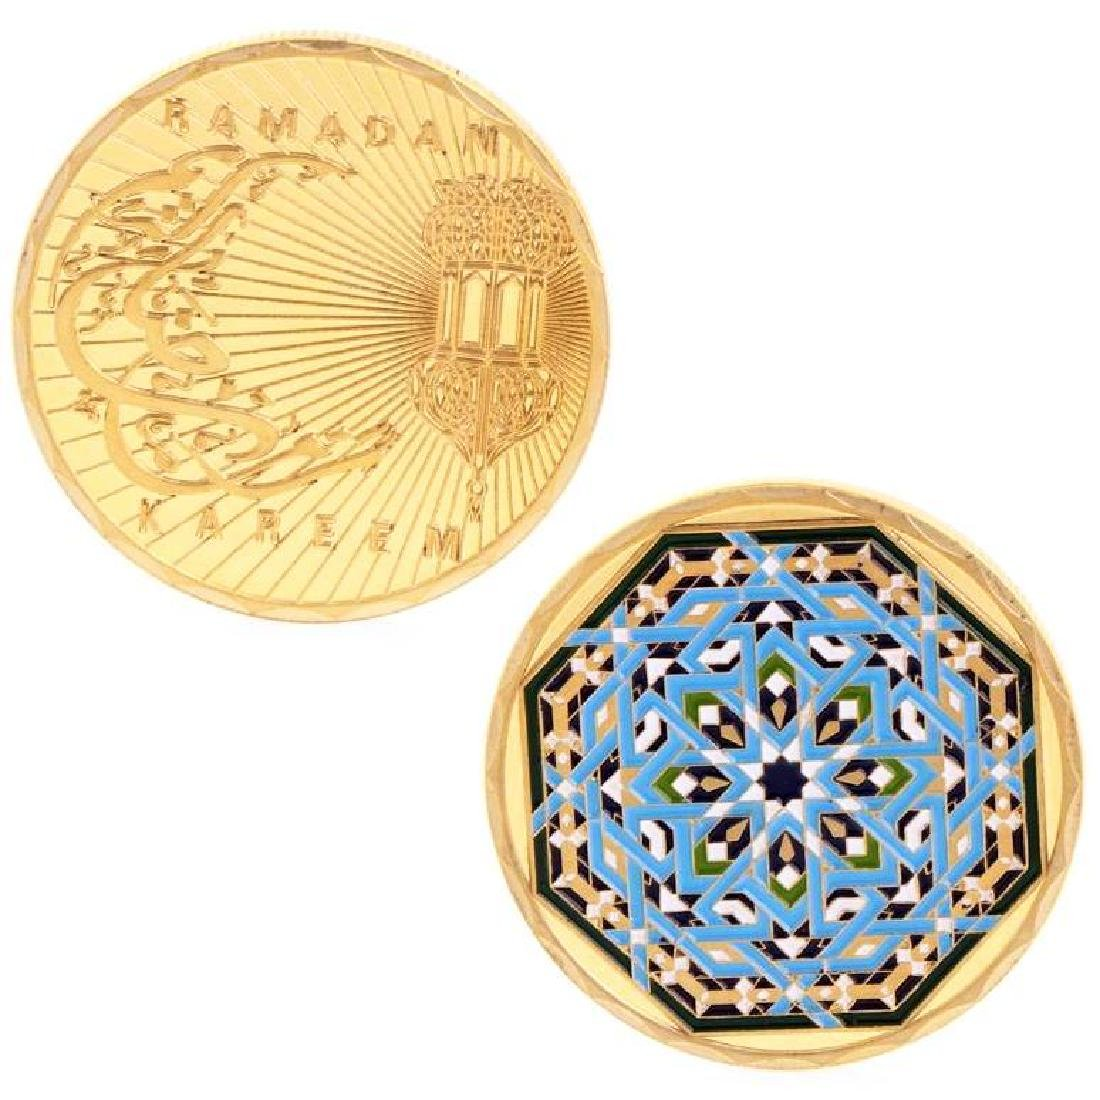 Ramadan Kaleidoscopic Gold Clad Coin